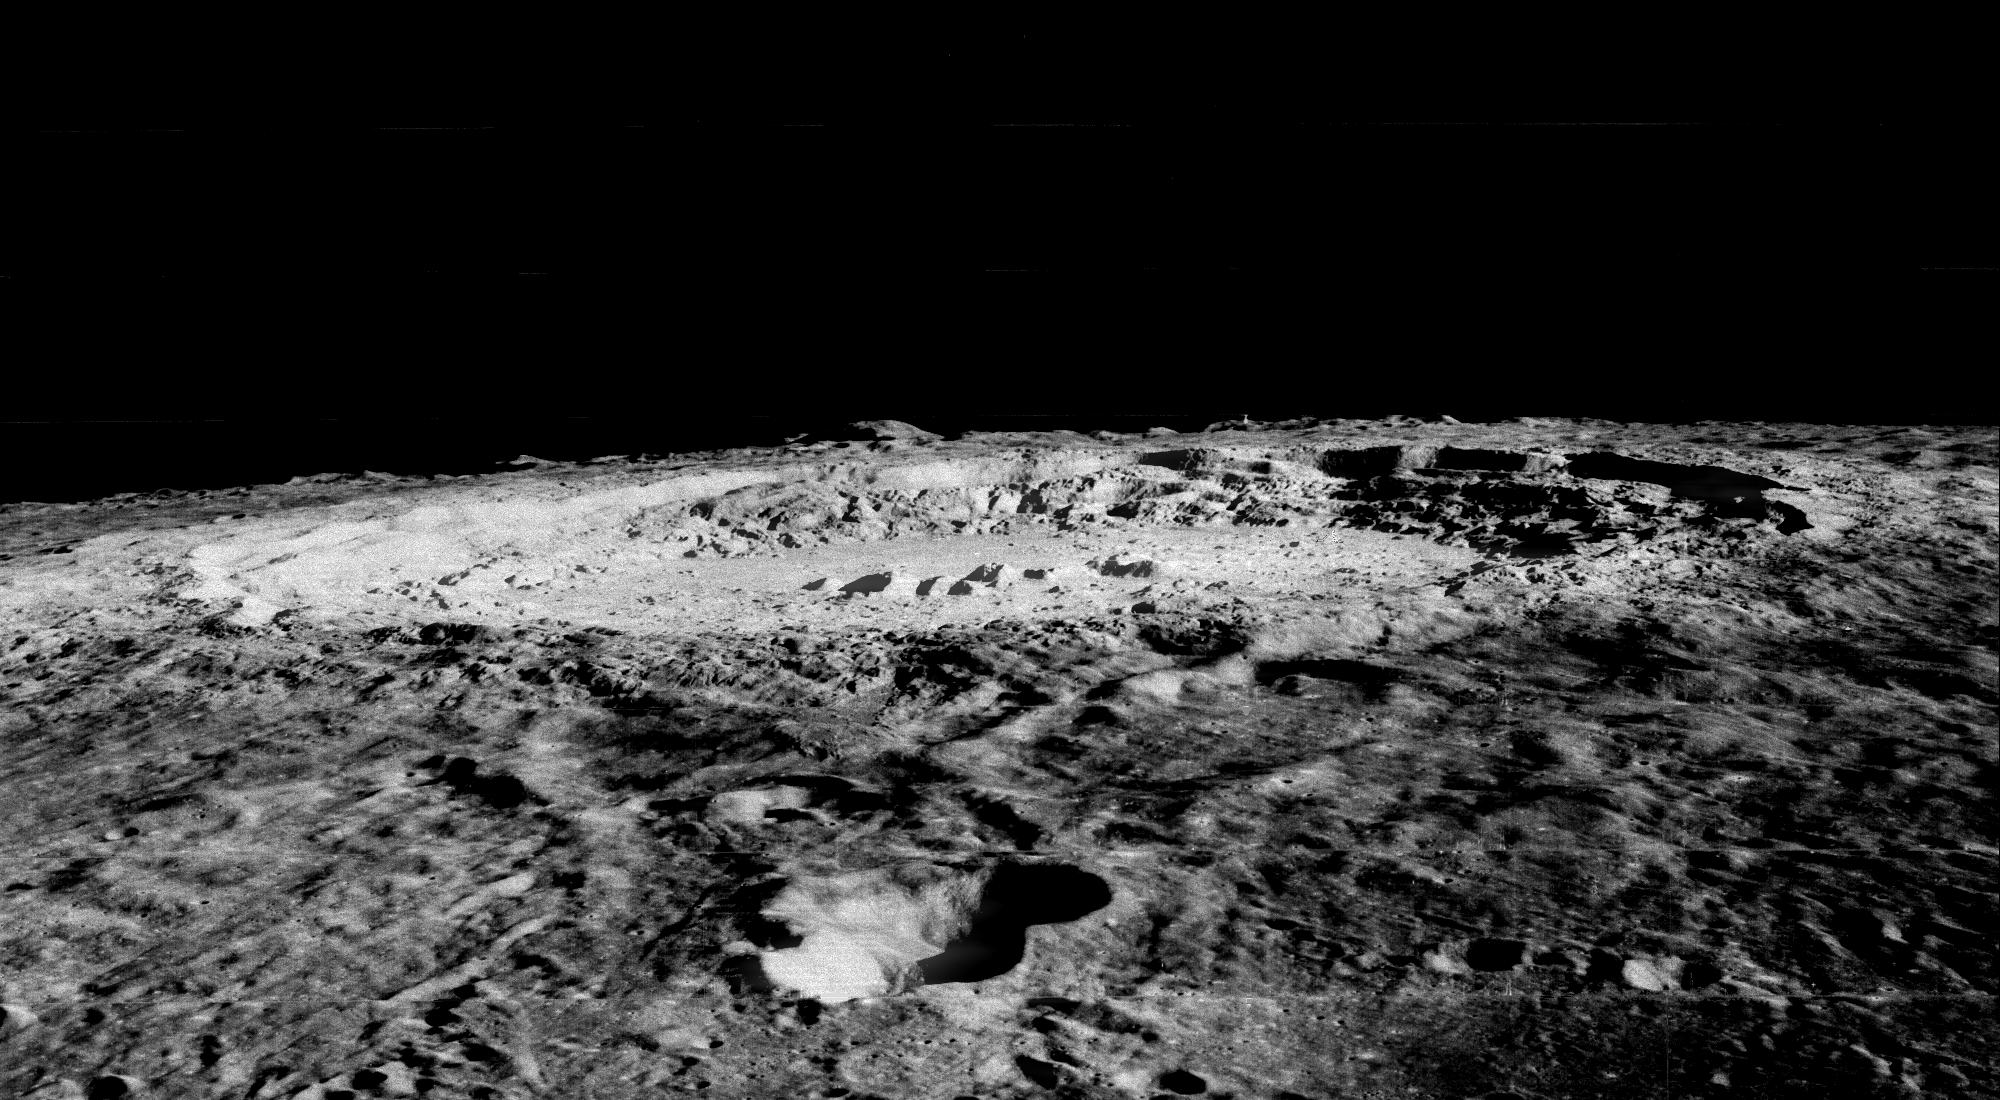 Copernicus is 93 km wide and is located within the Mare Imbrium Basin, northern nearside of the Moon (10 degrees N. 20 degrees W.).